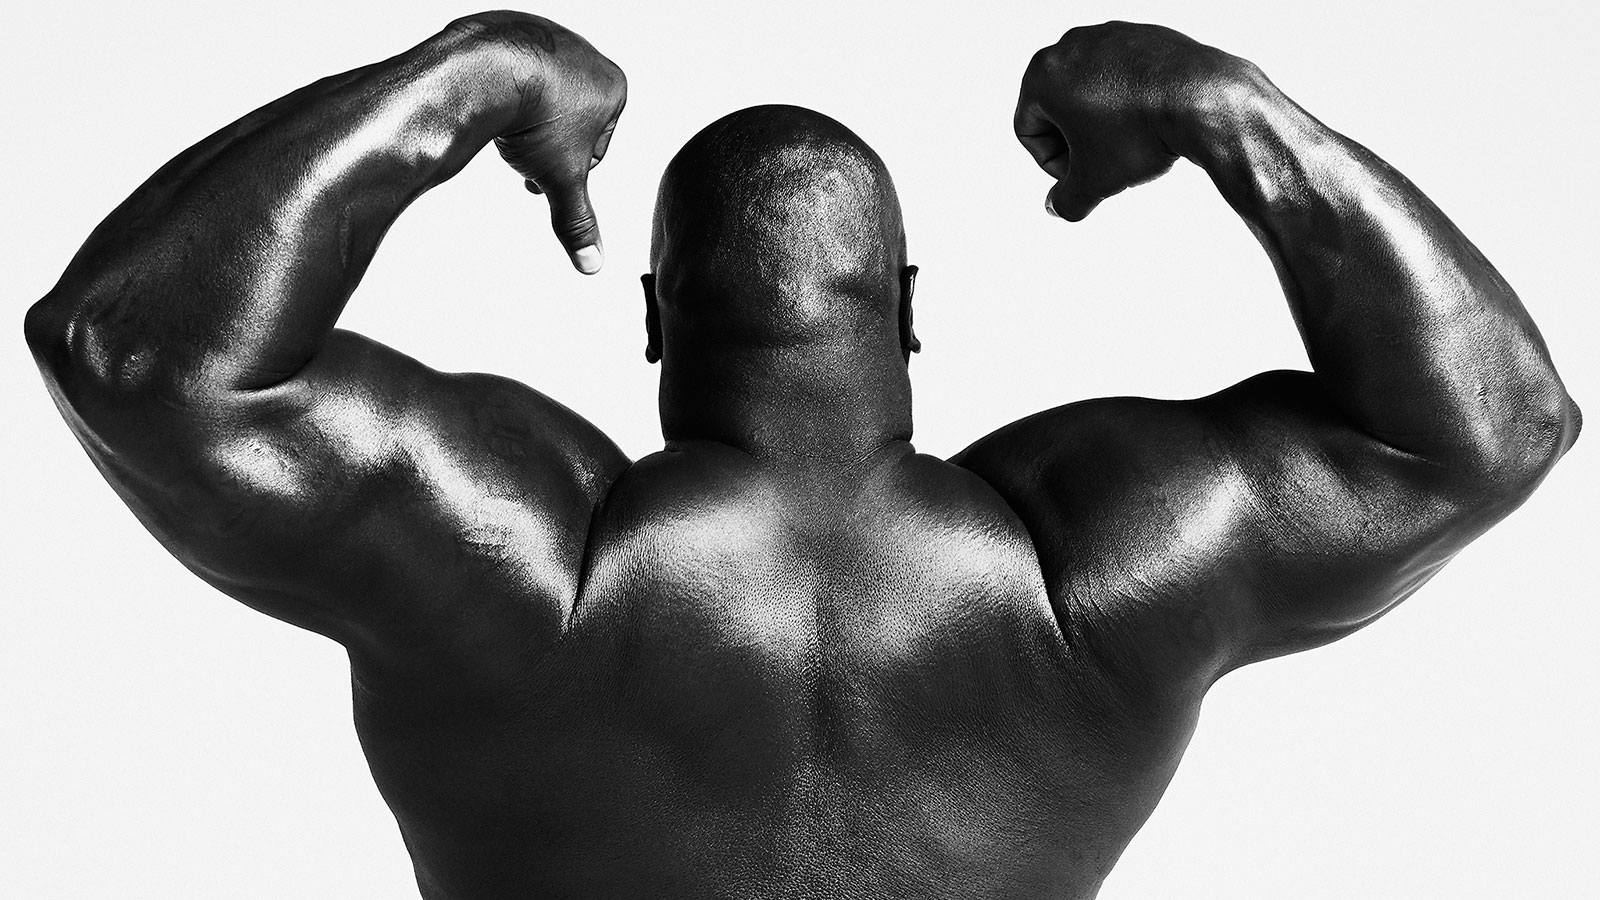 Vince Wilfork, NFL, featured in the Body Issue 2016: Fully Exposed on ESPN the Magazine